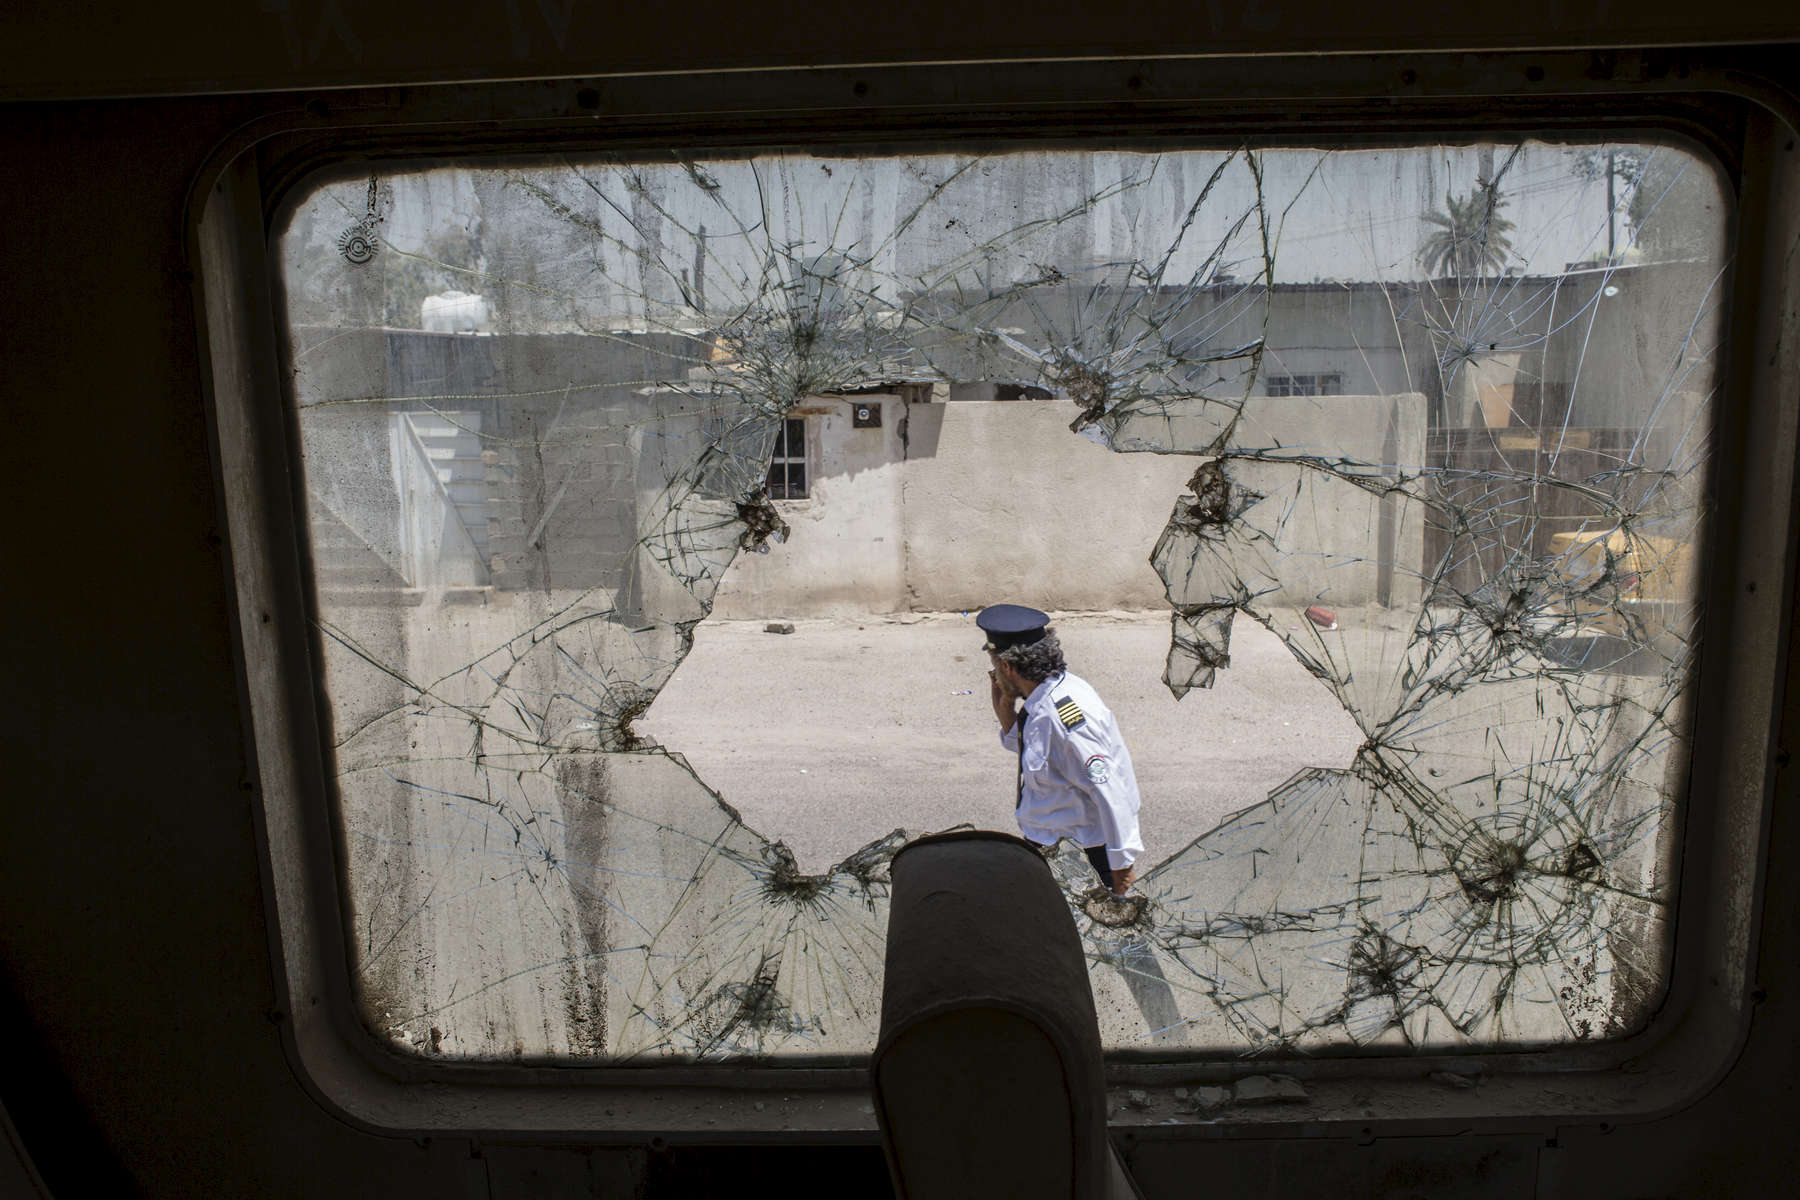 11/08/2016 -- Baghdad, Iraq -- Al-Karkhi walks past a train that was hit during crossfire between the US-led coalition and Iraqi forces in 2003. Bullet holes are seen across the window and carriage itself.